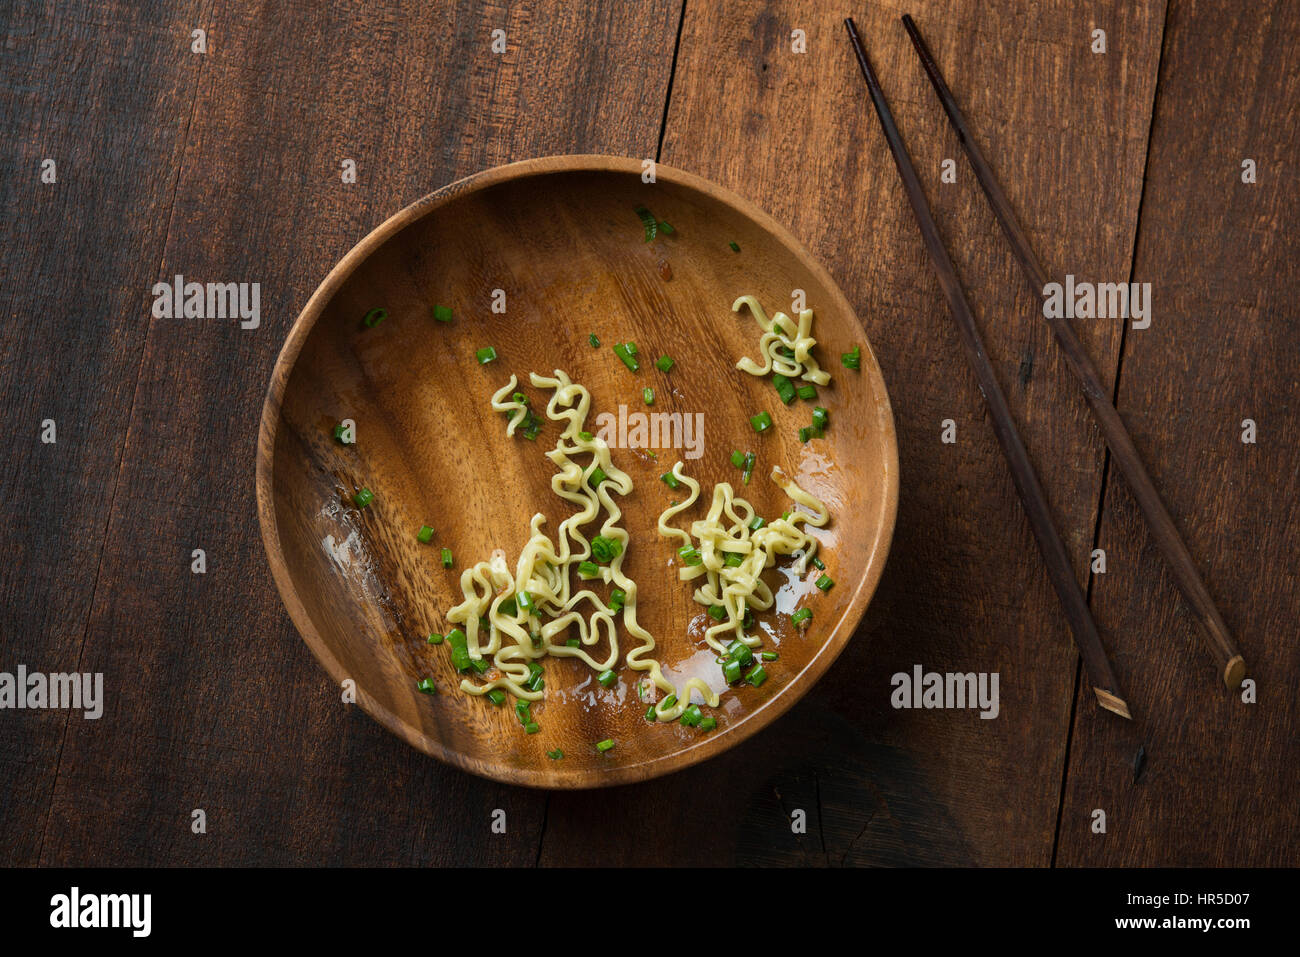 Top view leftover food Japanese ramen dried noodles with chopsticks on rustic wooden table. - Stock Image